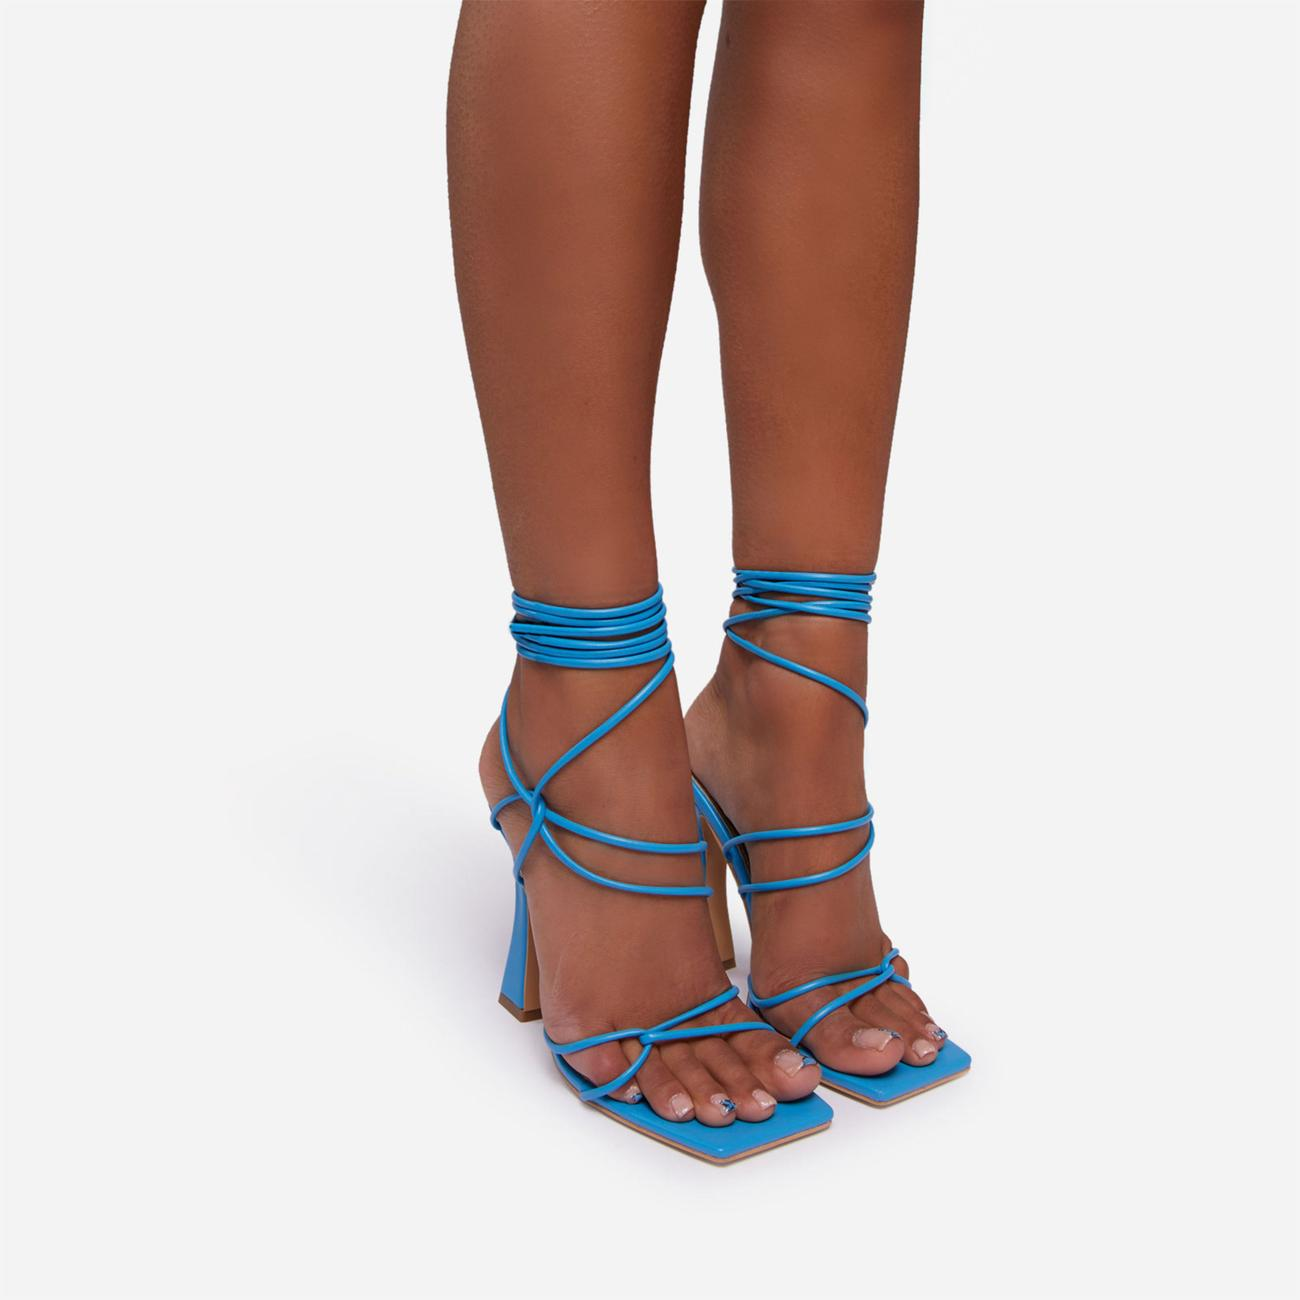 Seduce Lace Up Strappy Square Toe Curved Block Heel In Blue Faux Leather Image 3